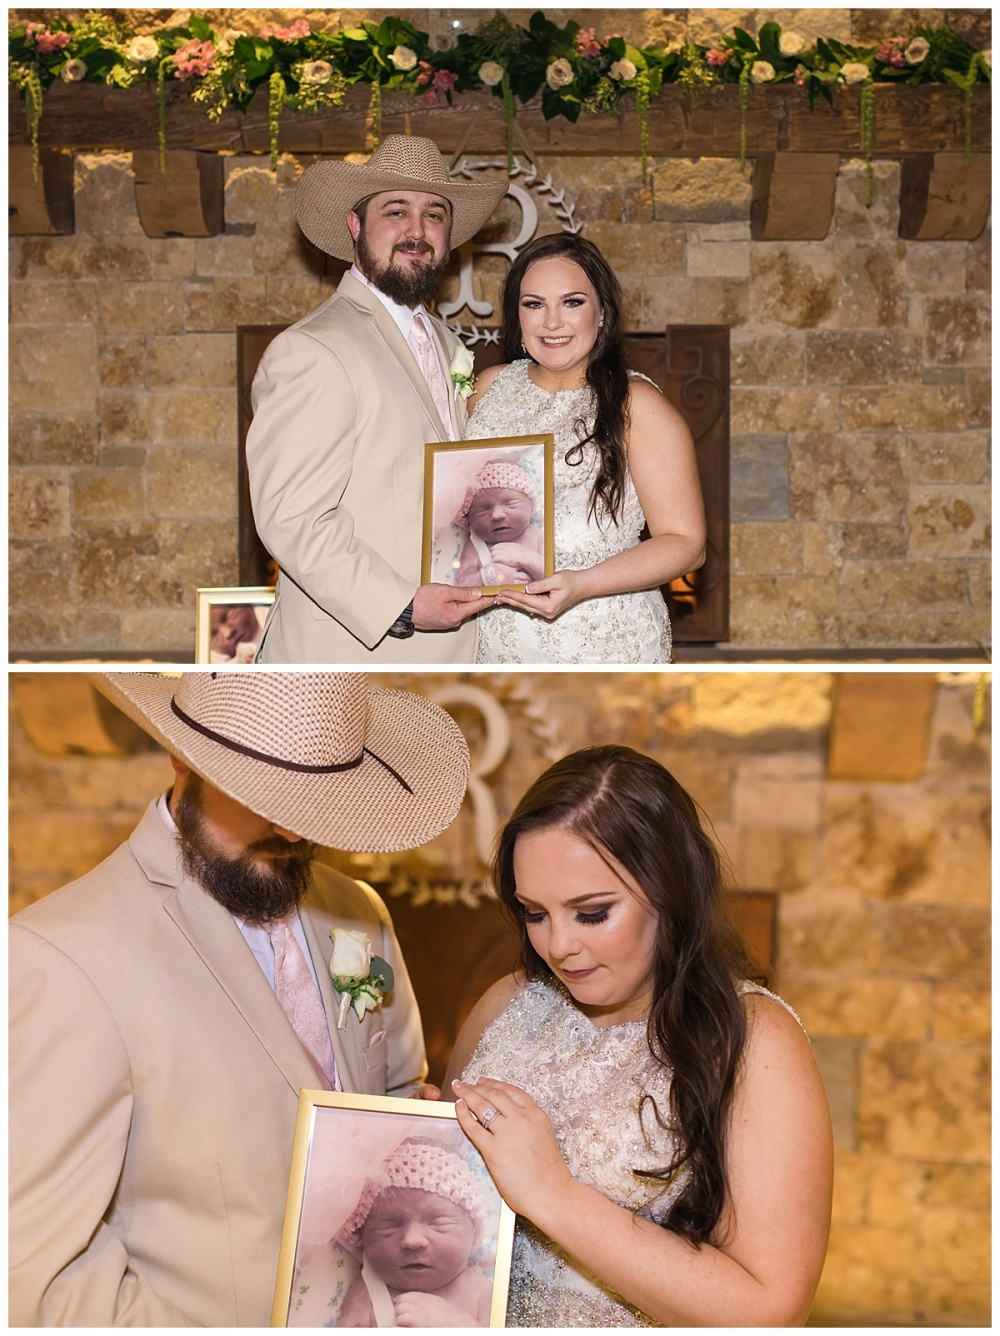 Carly-Barton-Photography-Branded-T-Ranch-Kendalia-Texas-Hill-Country-Wedding_0066.jpg